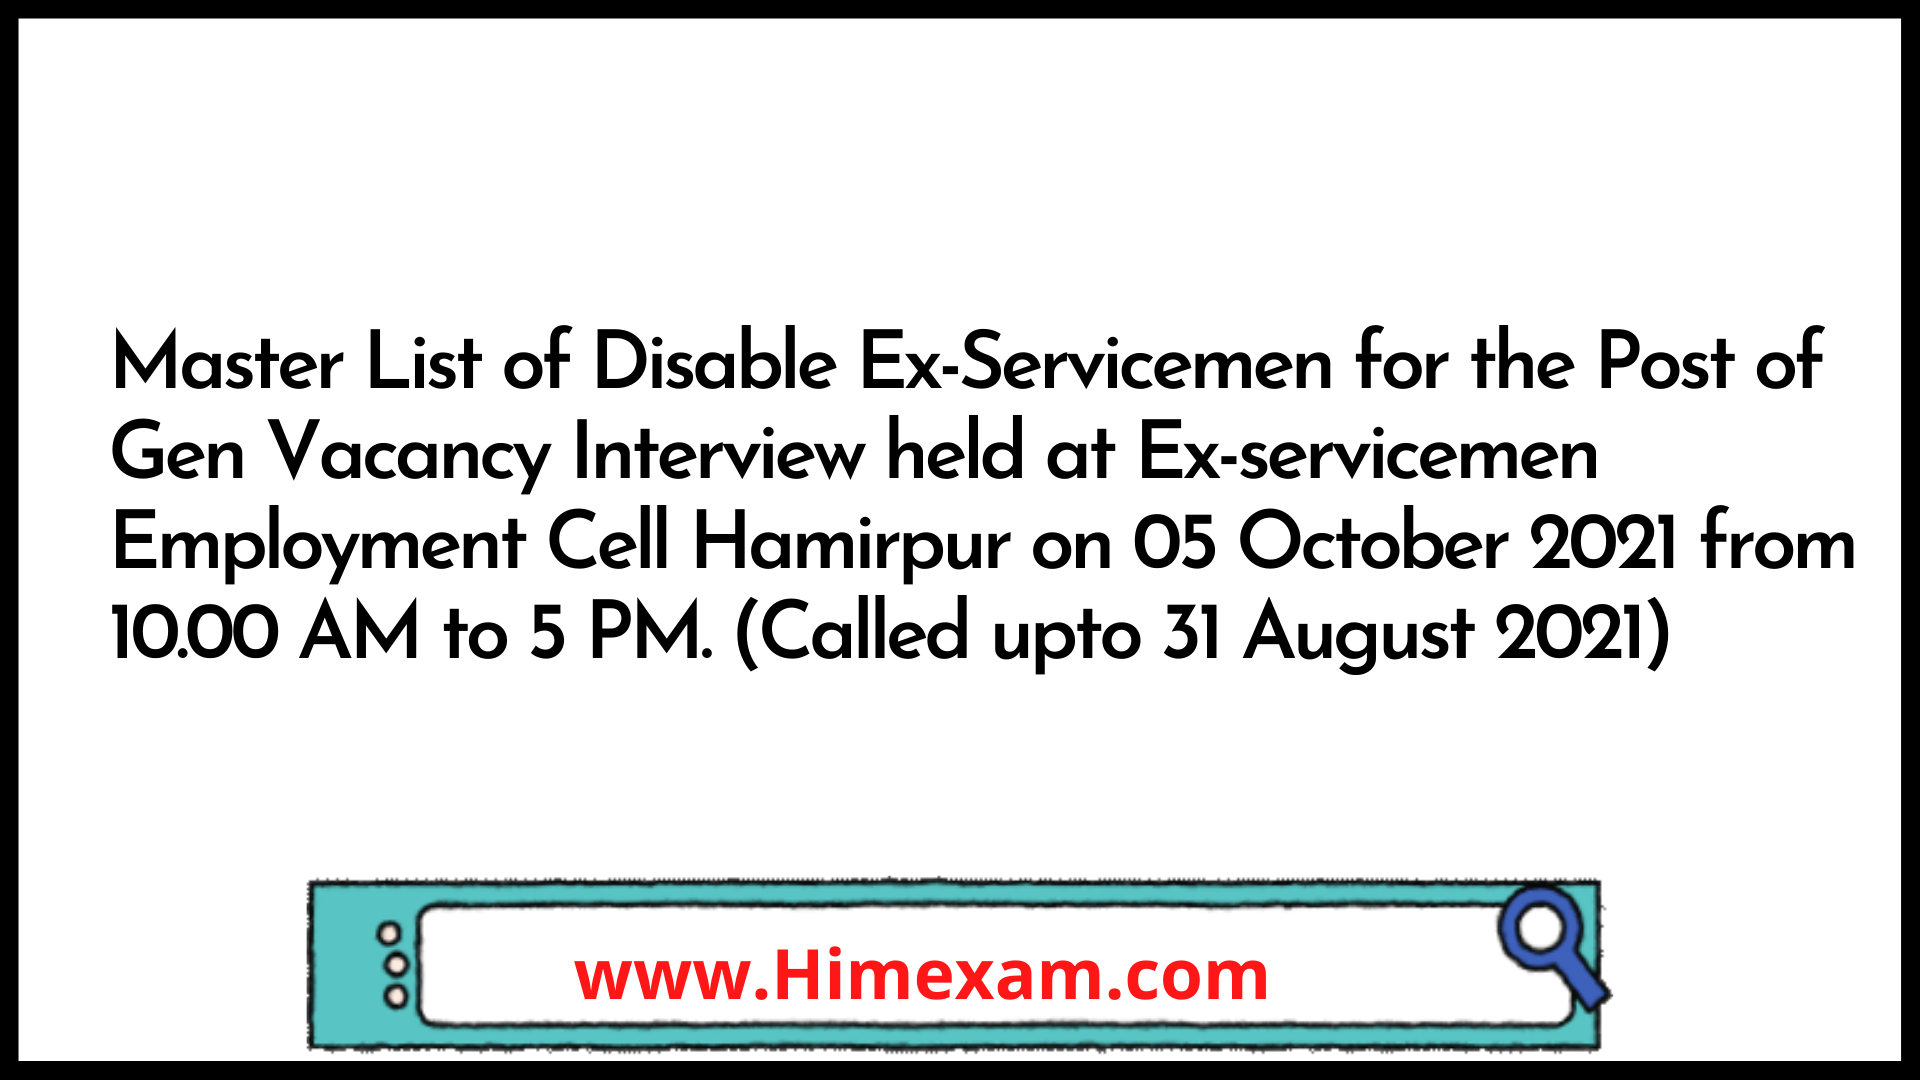 Master List of Disable Ex-Servicemen for the Post of Gen Vacancy Interview held at Ex-servicemen Employment Cell Hamirpur on 05 October 2021 from 10.00 AM to 5 PM. (Called upto 31 August 2021)